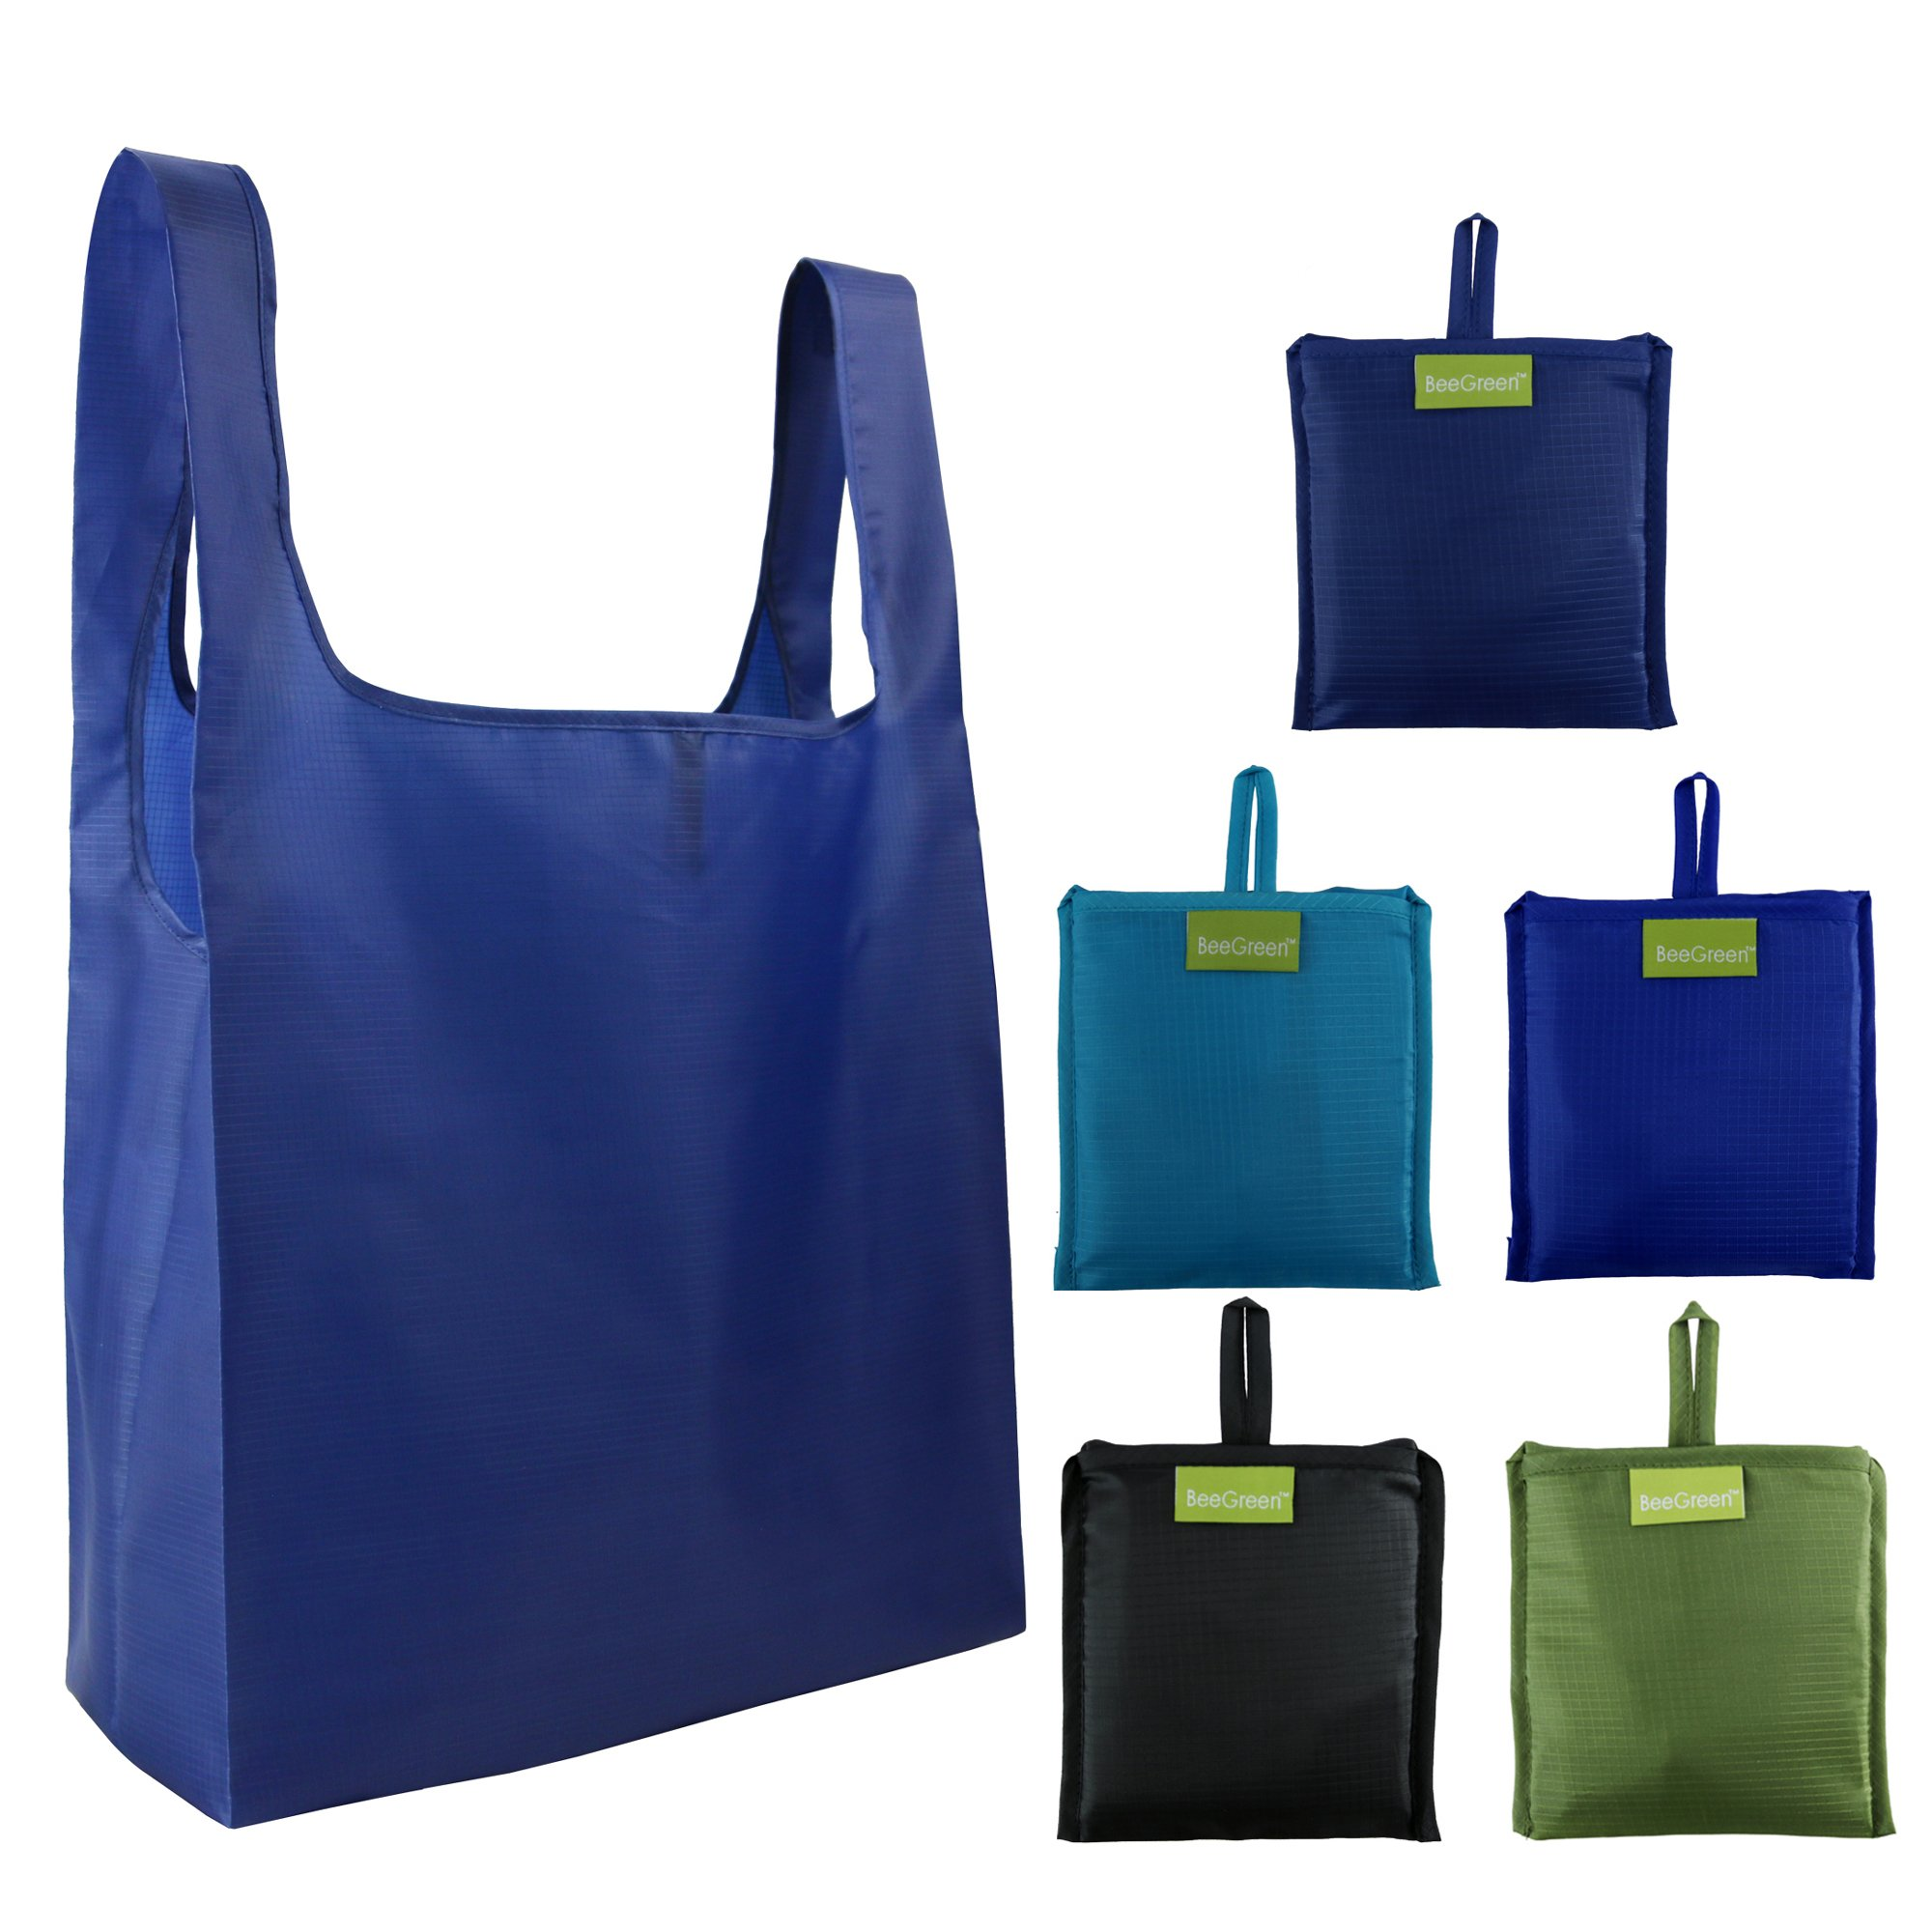 Reusable Grocery Bags 5 Pack, Grocery Tote Folded into Attached Pouch, Ripstop Polyester Shopping Bags, Washable, Durable and Lightweight (Black,Royal,Navy,Teal,Moss)